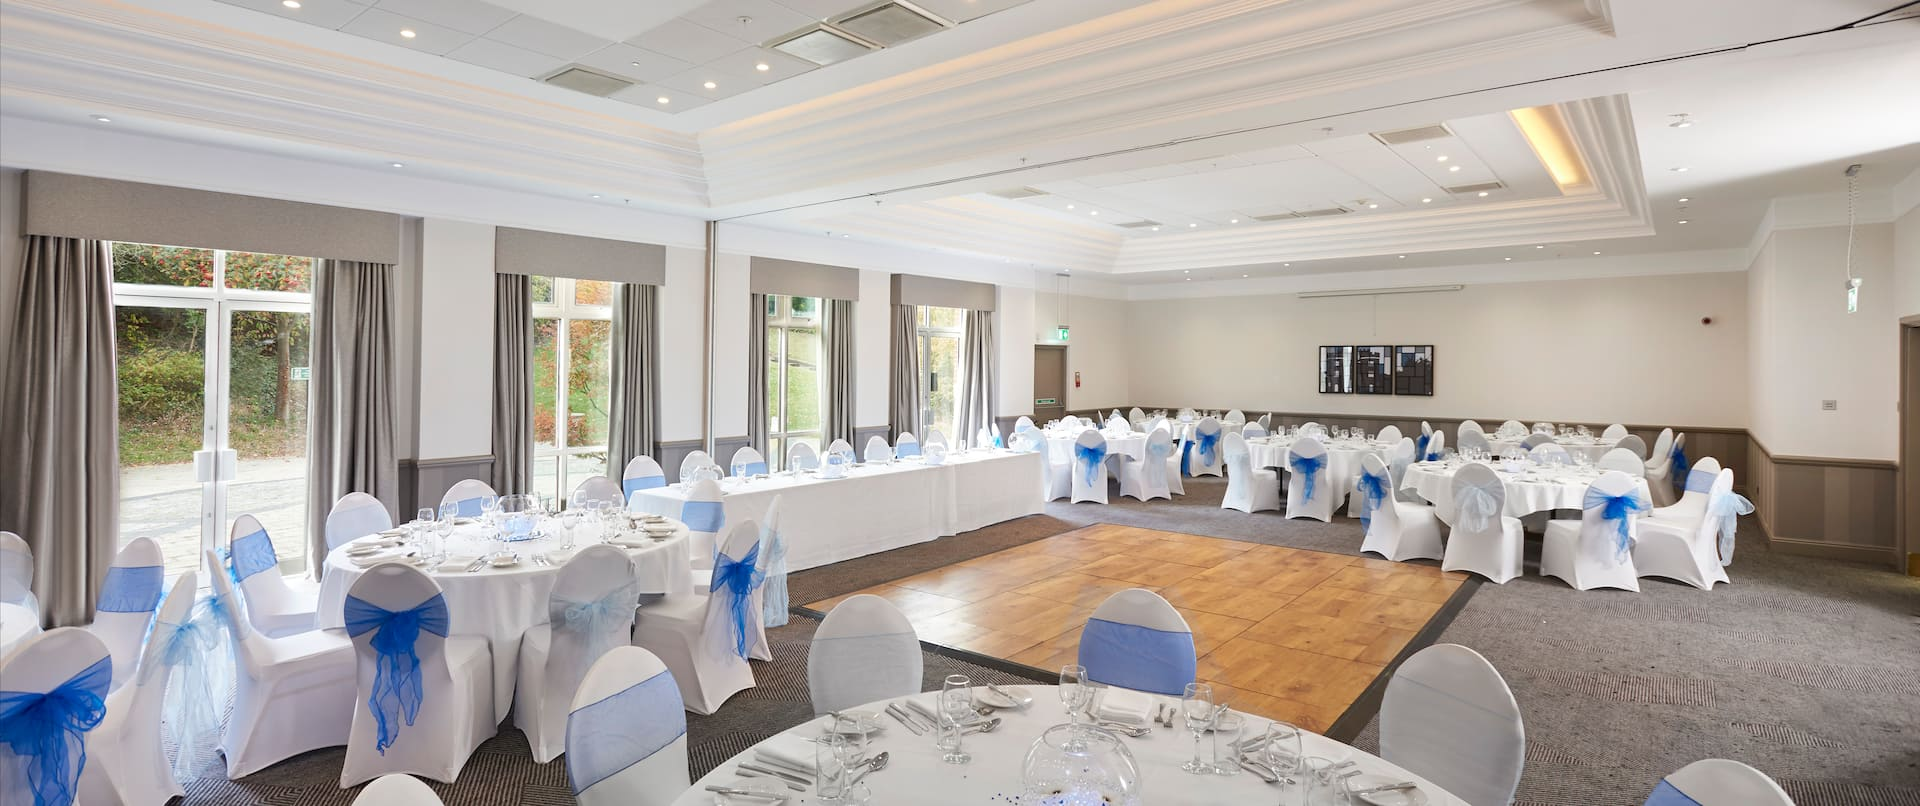 Queen Elizabeth Suite - Wedding